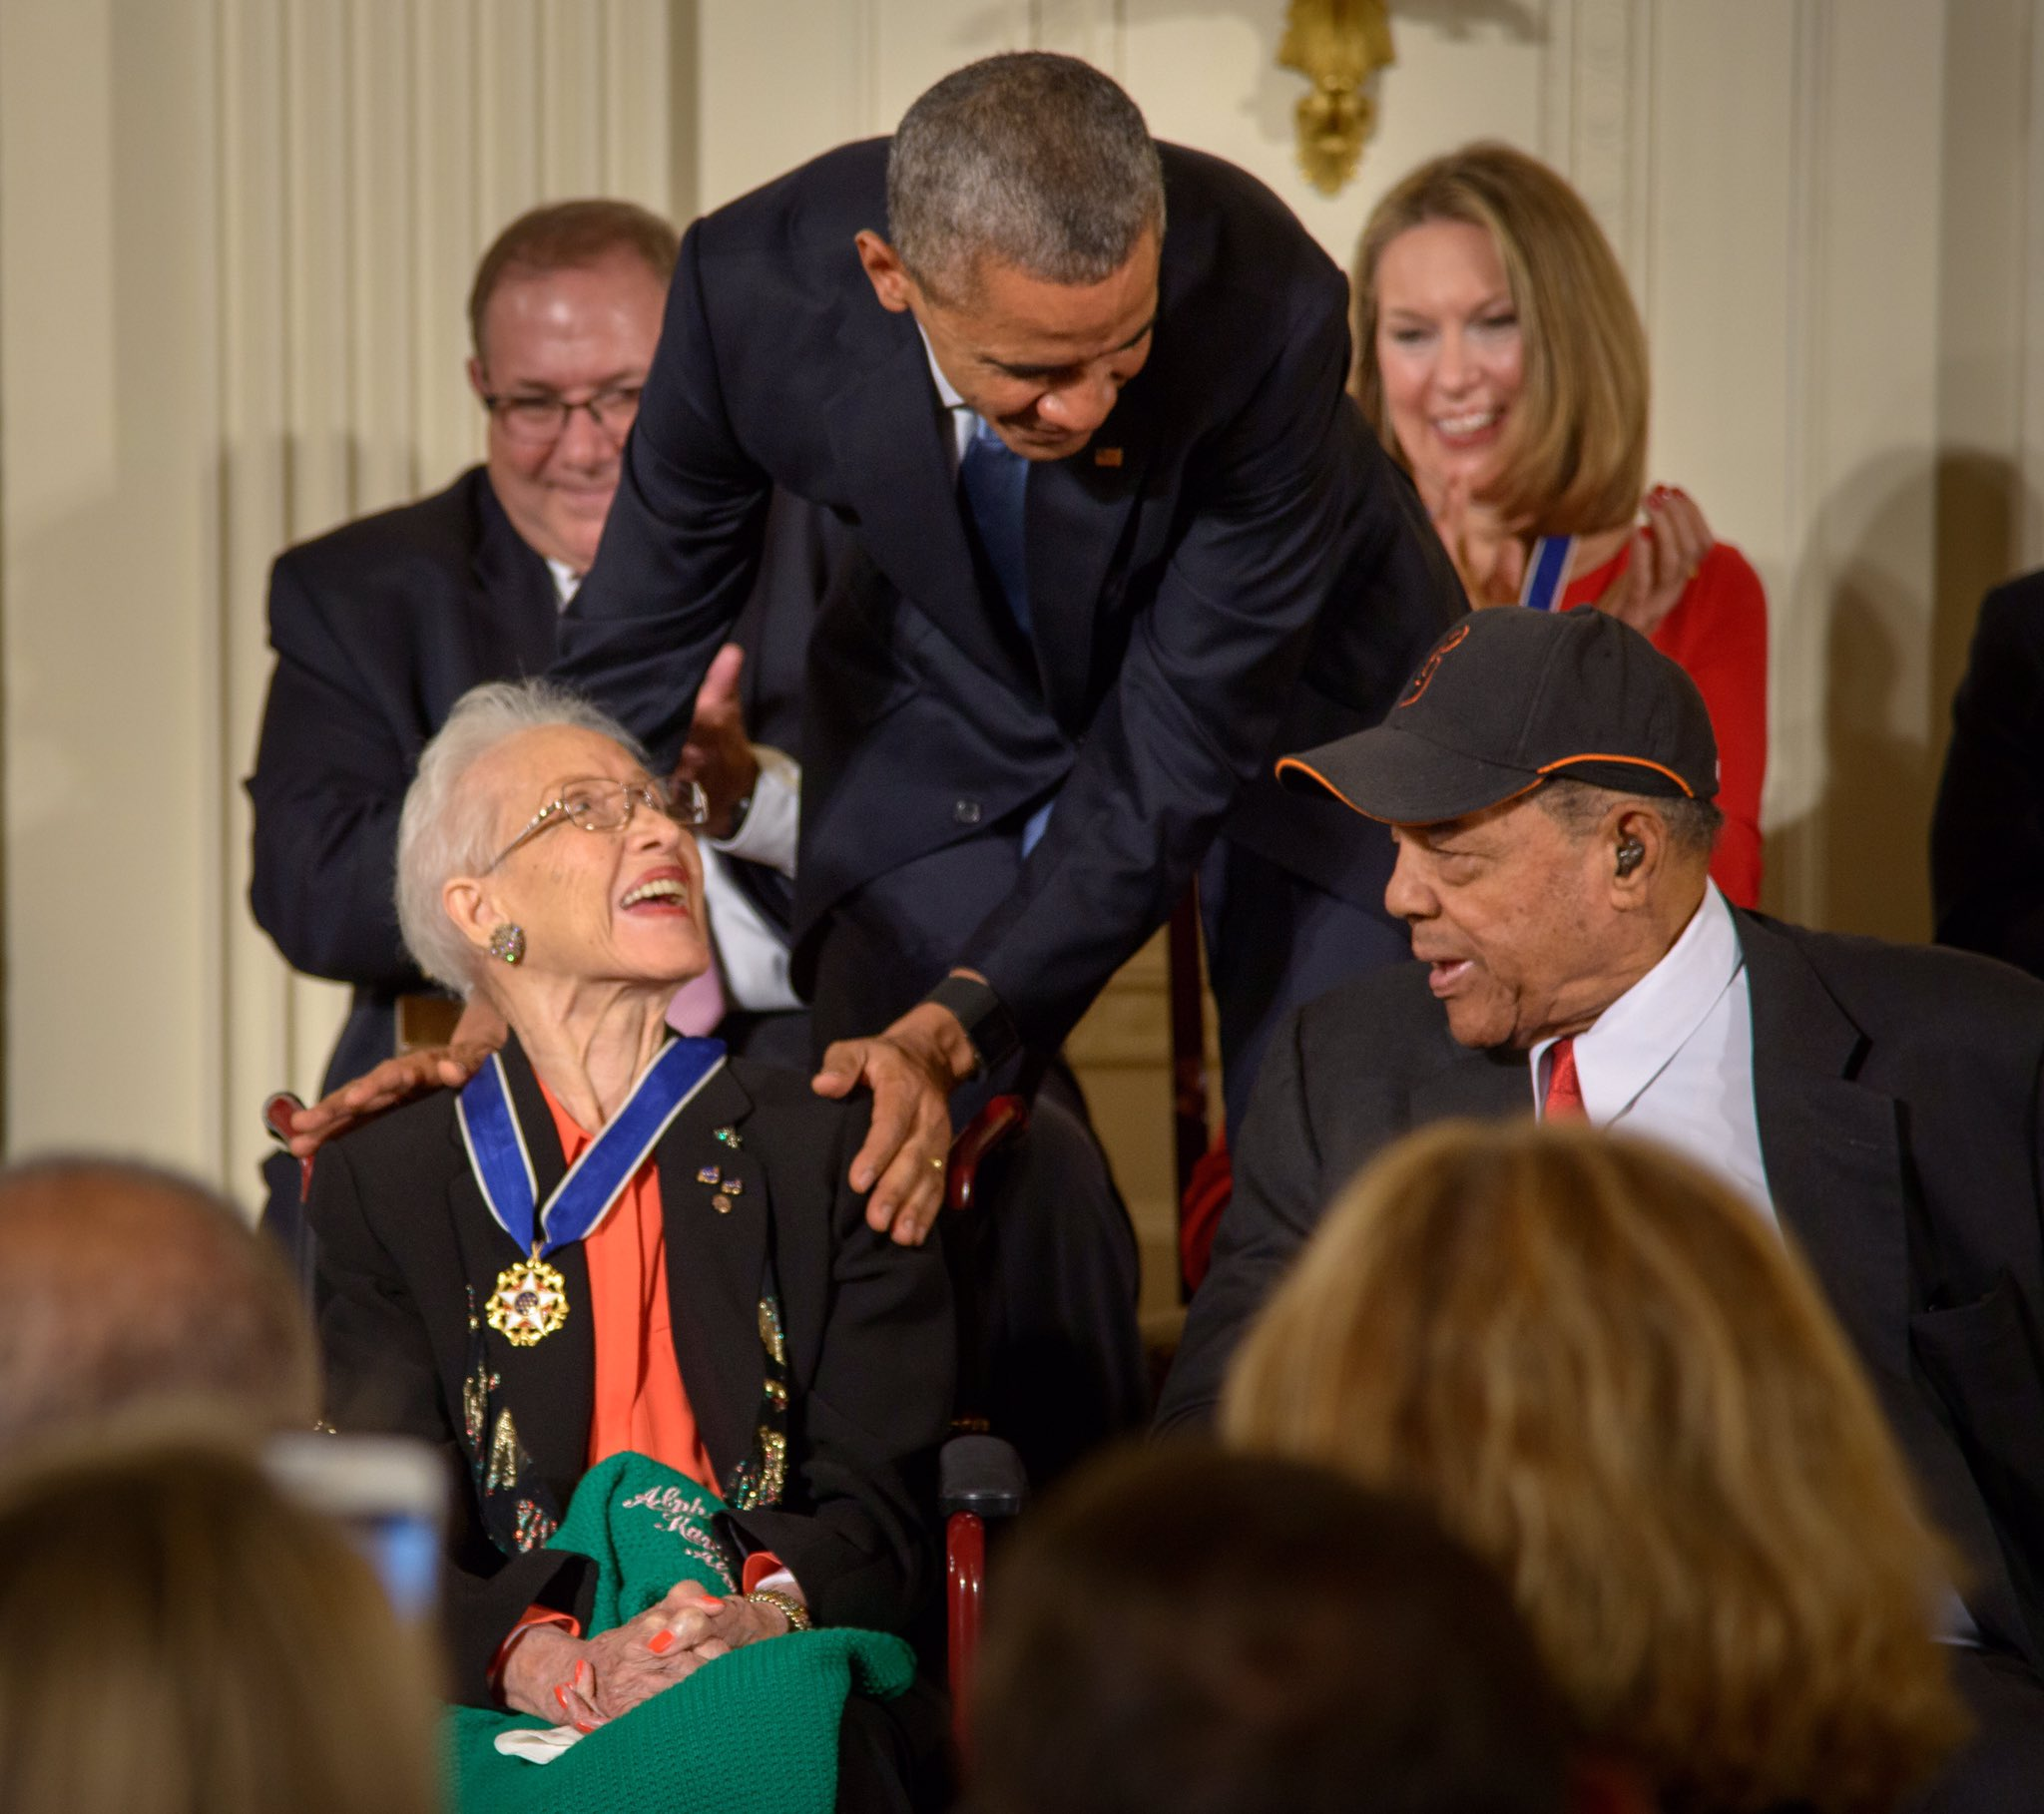 After a lifetime of reaching for the stars, today, Katherine Johnson landed among them. She spent decades as a hidden figure, breaking barriers behind the scenes. But by the end of her life, she had become a hero to millions—including Michelle and me. https://t.co/isG29nwBiB